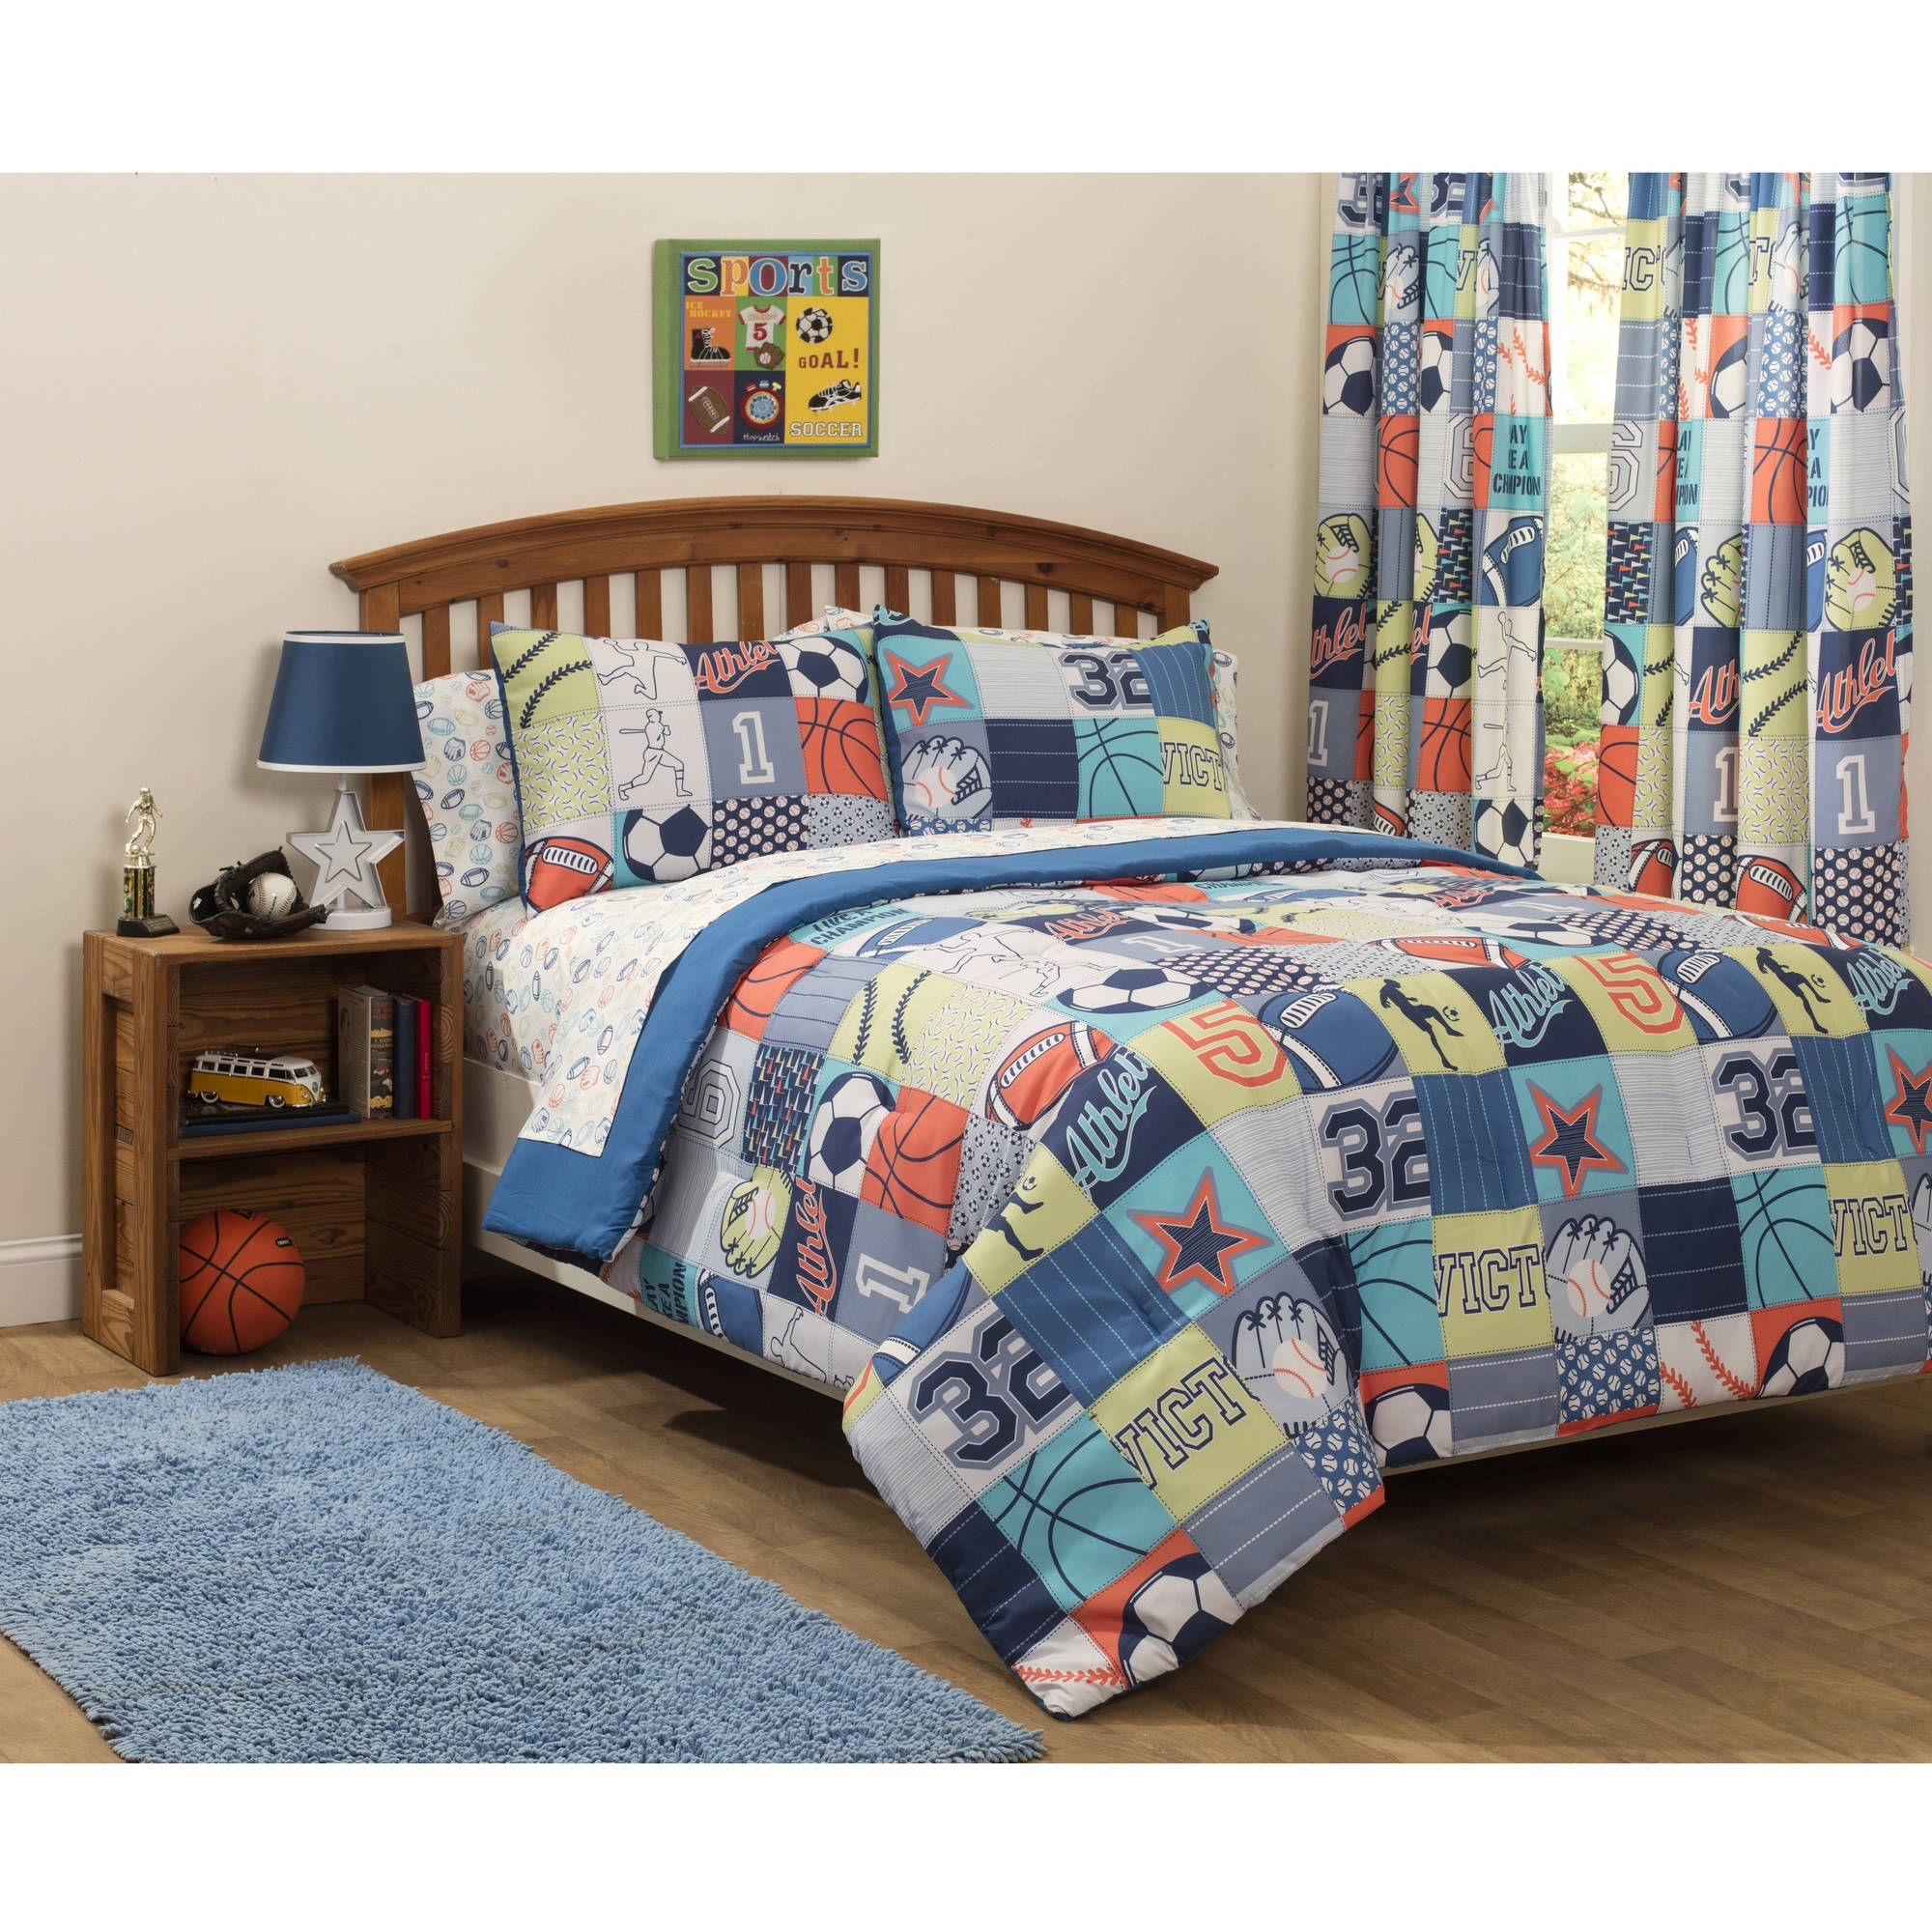 bed factor x in boys new reversible bag teen room comforter my a twin sports itm skateboarding